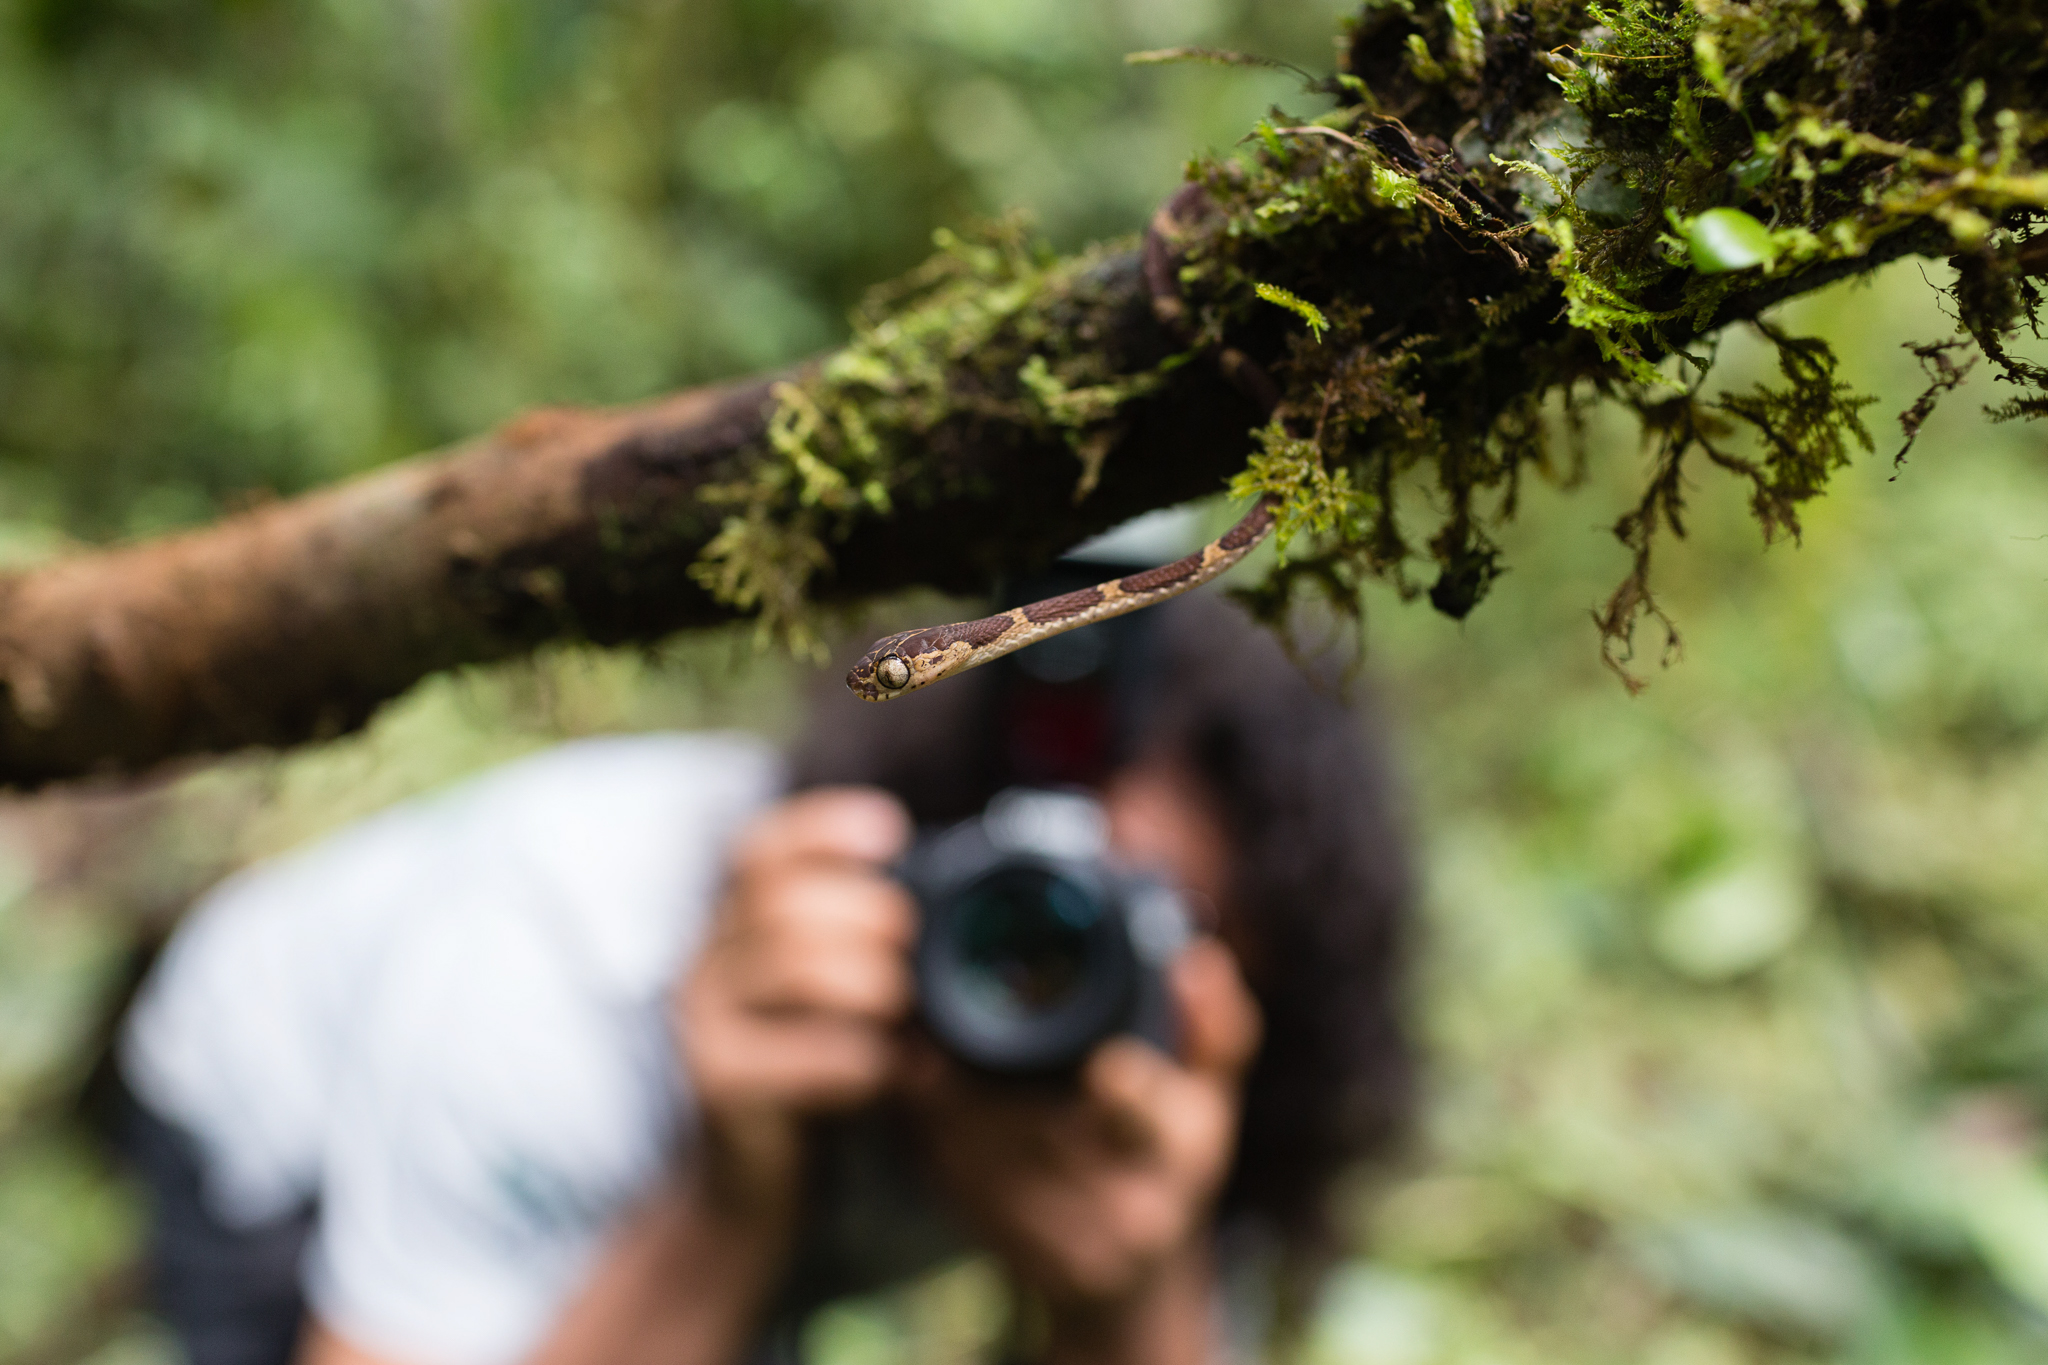 Peruvian biologist Giussepe Gagliardi photographing an arboreal snake (Imantodes cenchoa) during one of the daily specimen photo sessions. Photo by Andy Isaacson